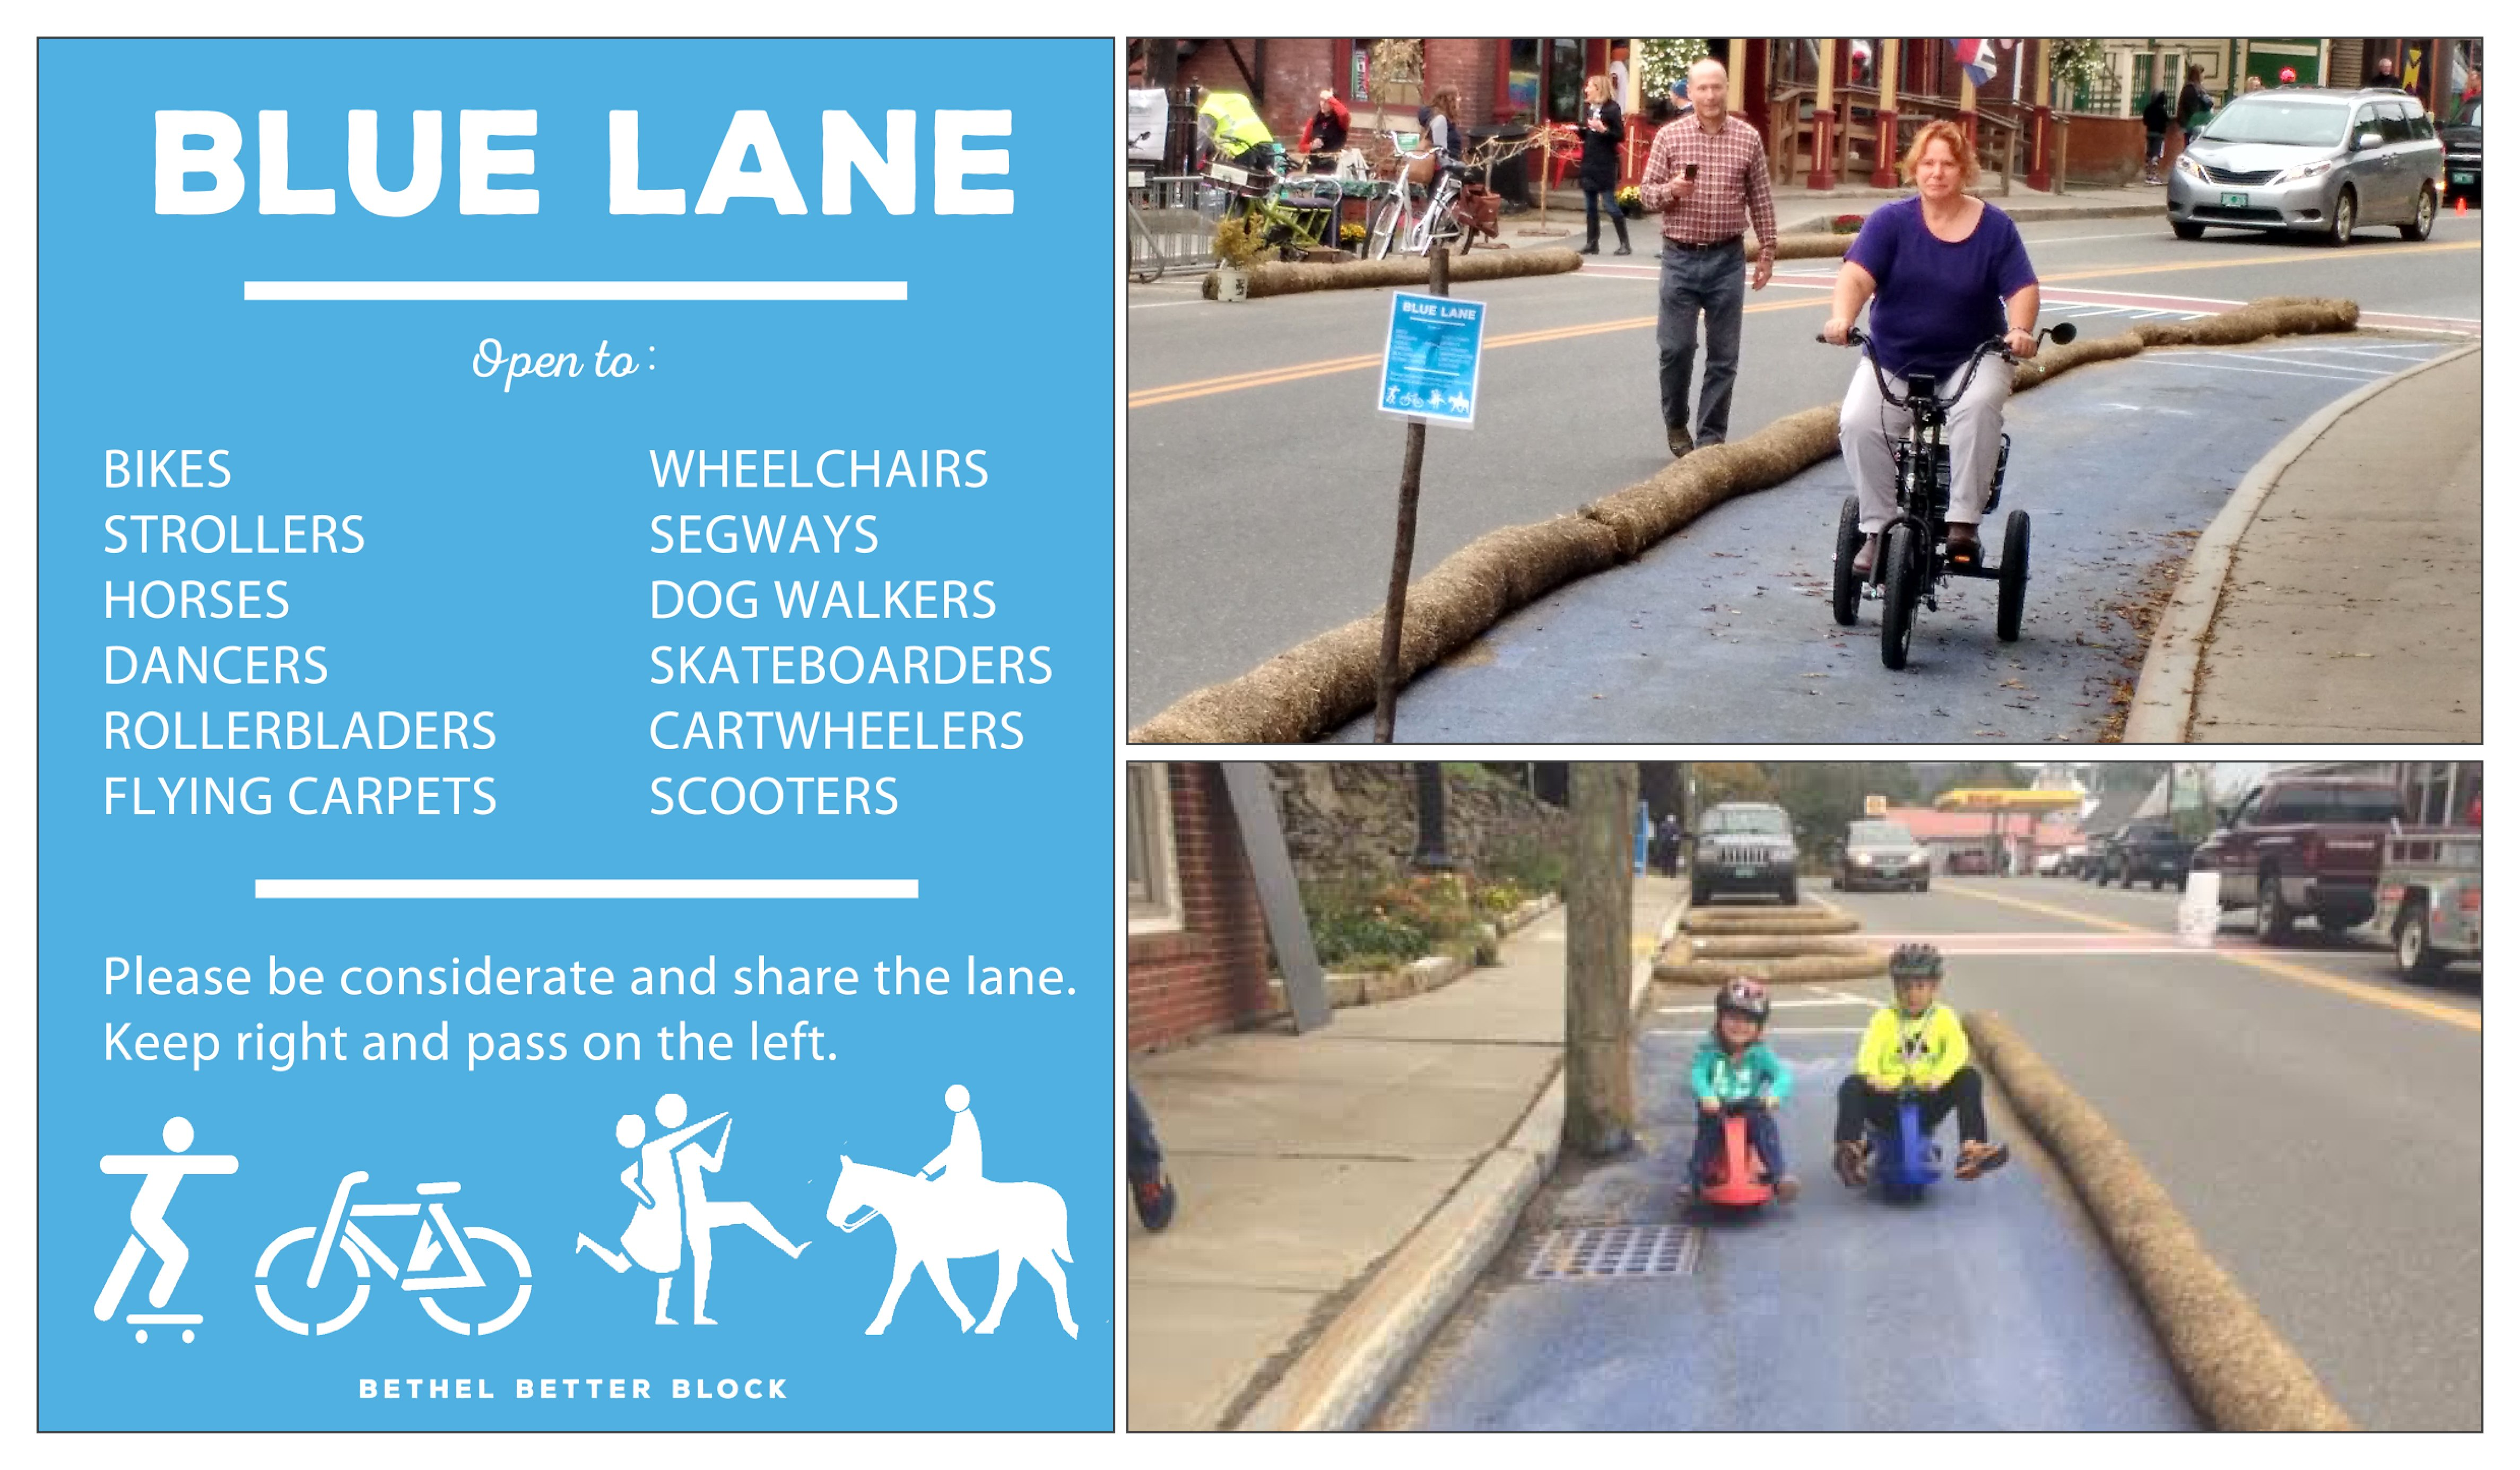 A blue poster describes the Blue Lane and three tricyclists, both older and young, show how the lane can be used.